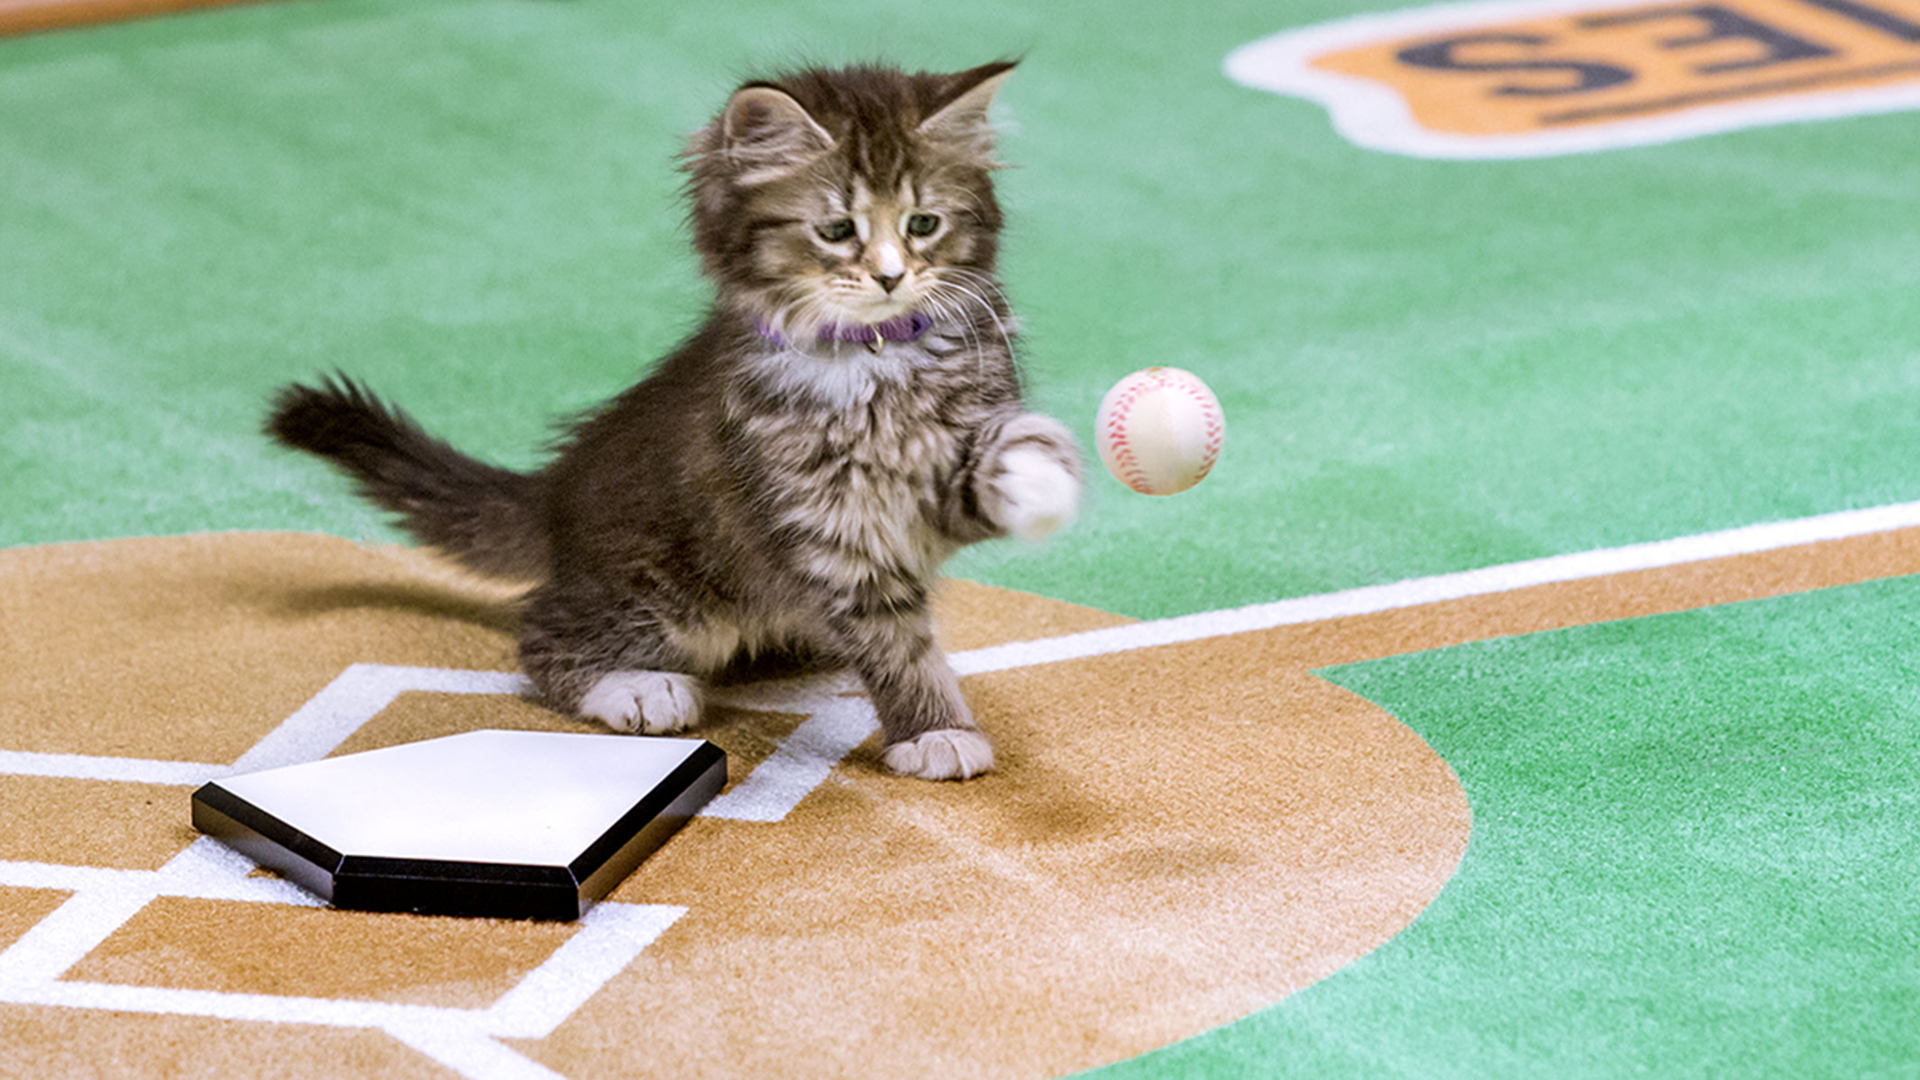 Kittens play baseball in Paw Star Game on Hallmark Channel